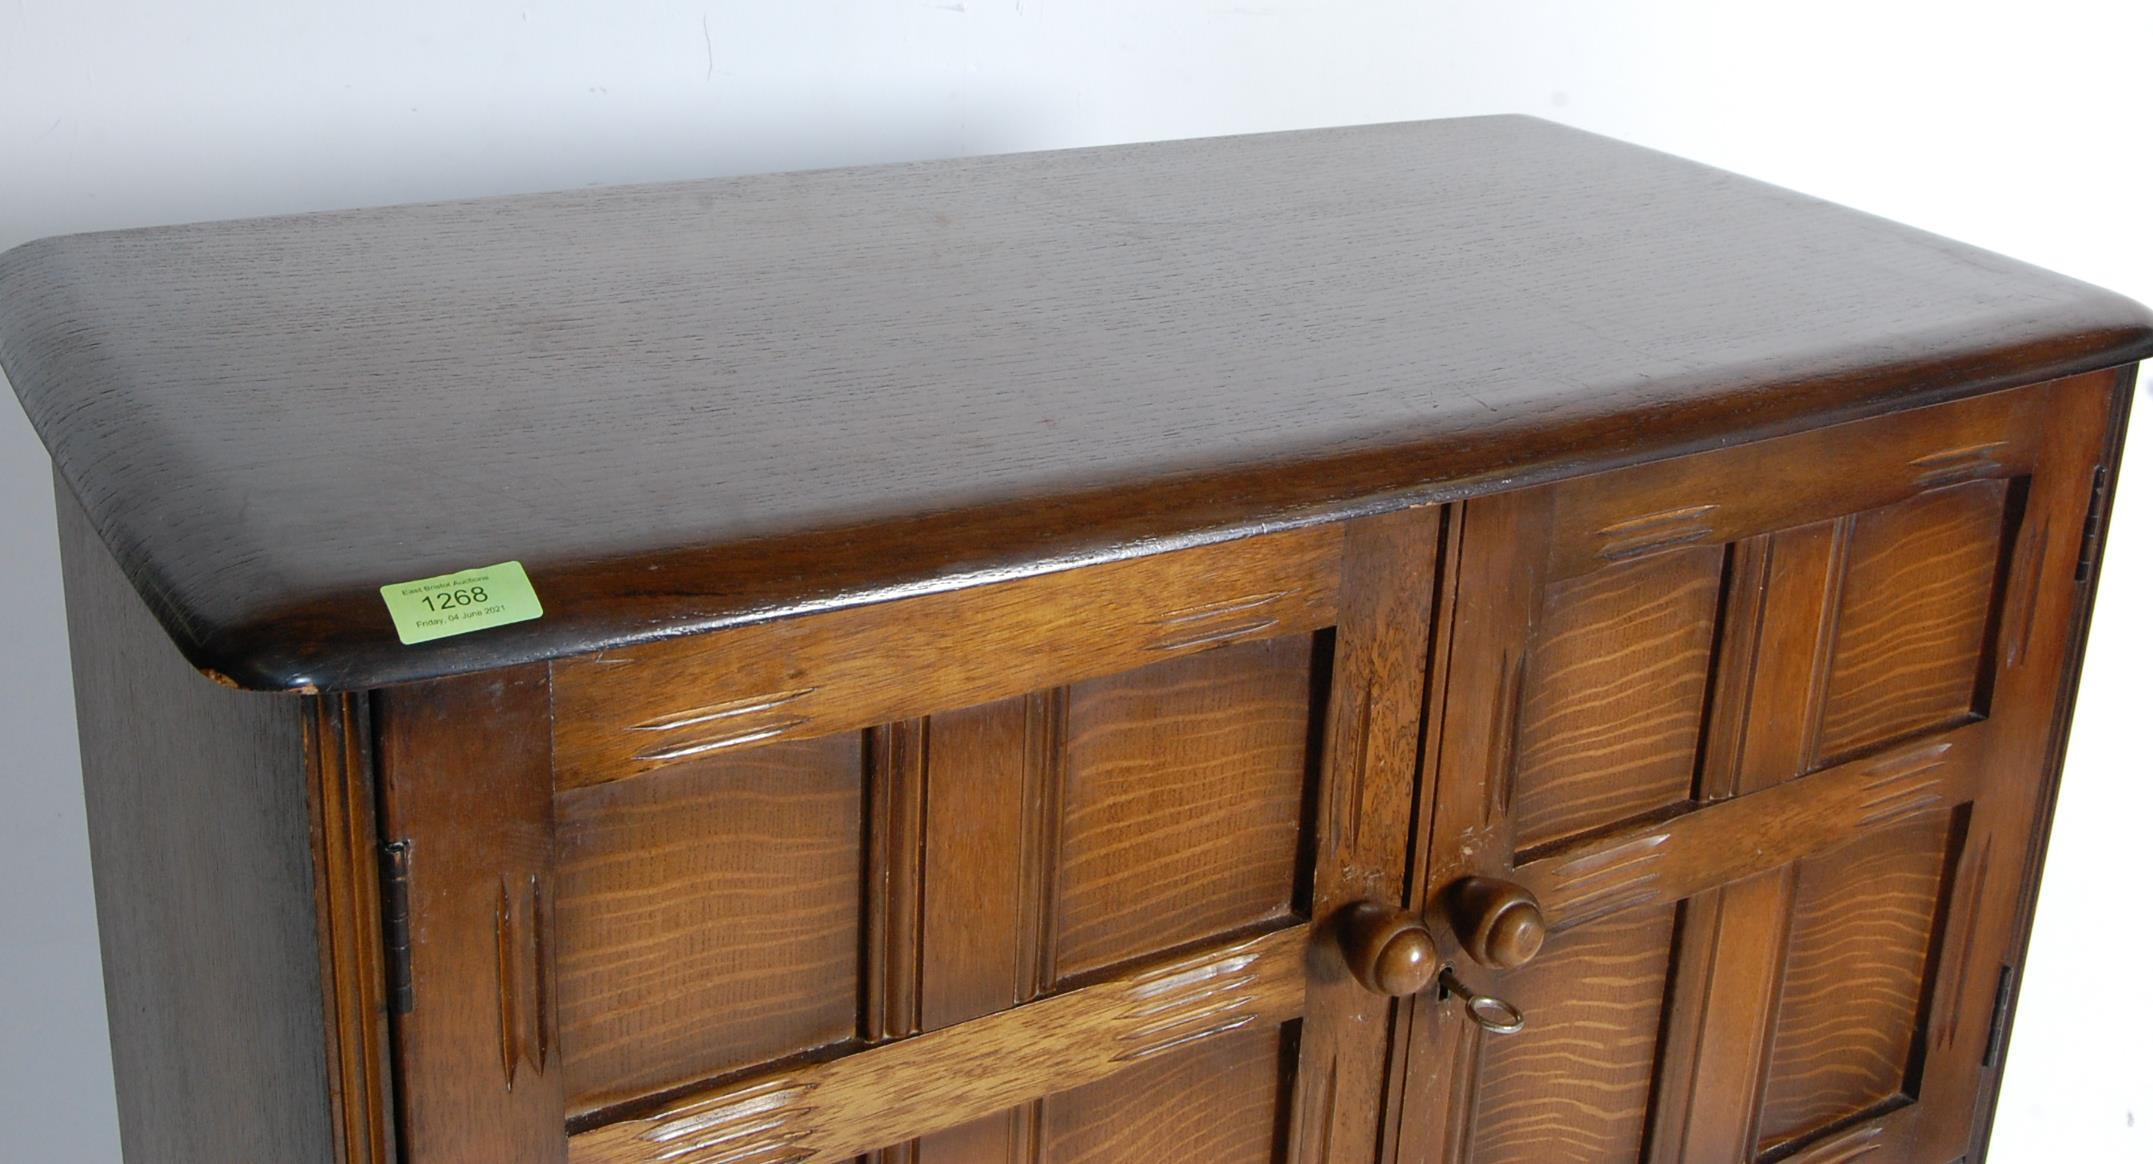 MID CENTURY OAK COCKTAIL CABINET - Image 3 of 6